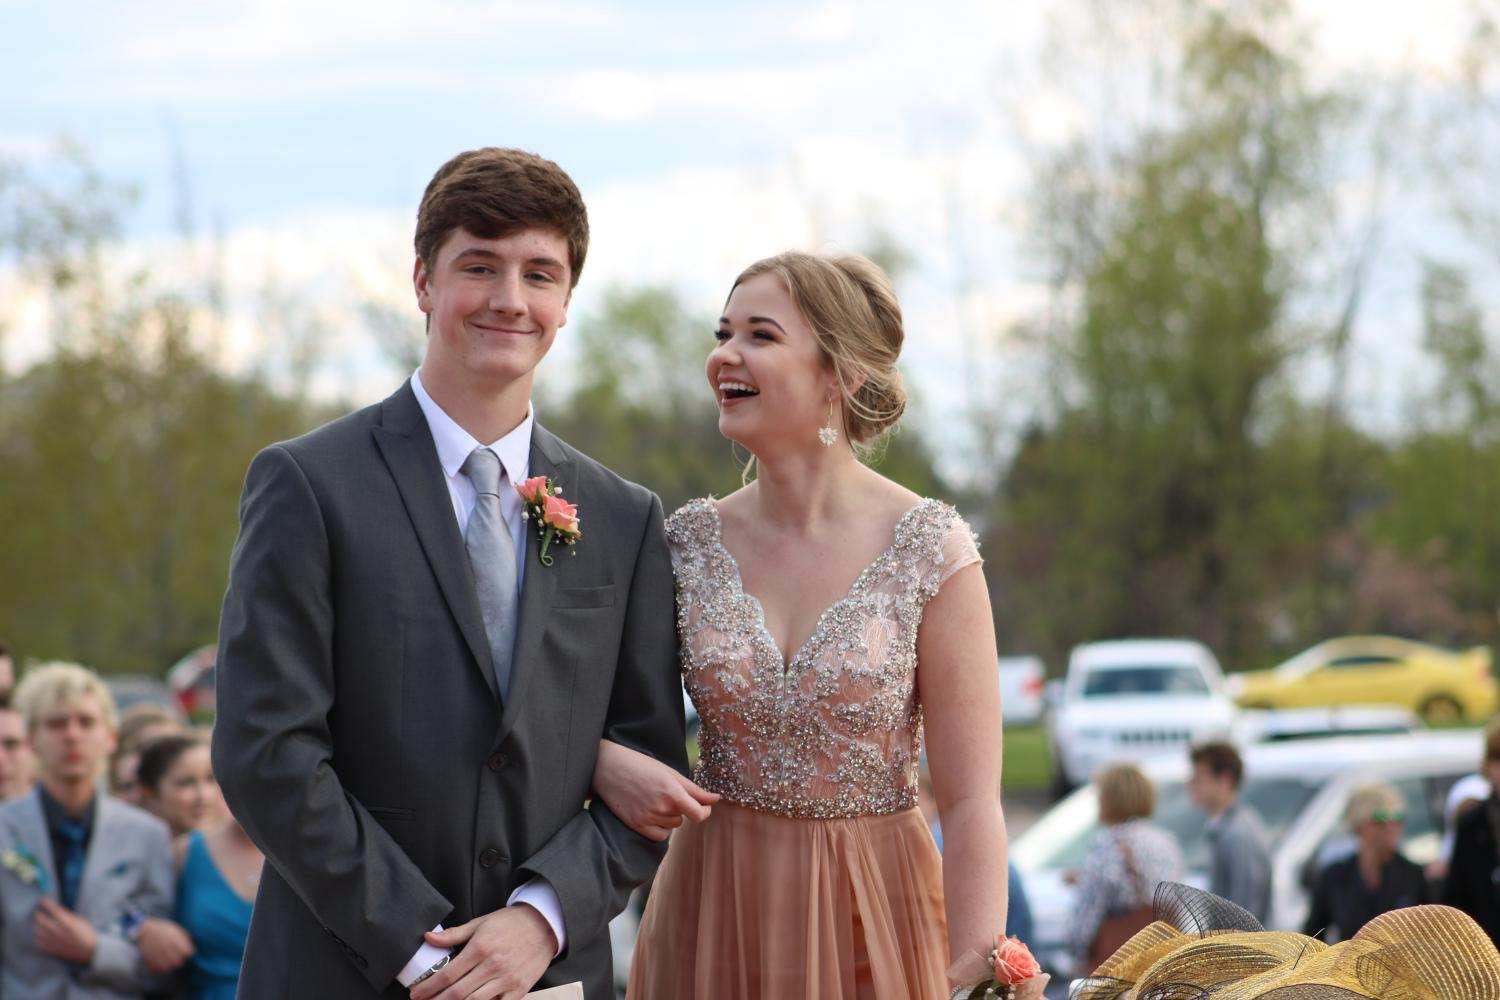 Senior+Rose+Menzies+accompanies+her+date+into+prom.+The+%22paparazzi%22+took+photos+of+the+couples+as+they+walked+on+the+red+carpet+and+into+the+dance.